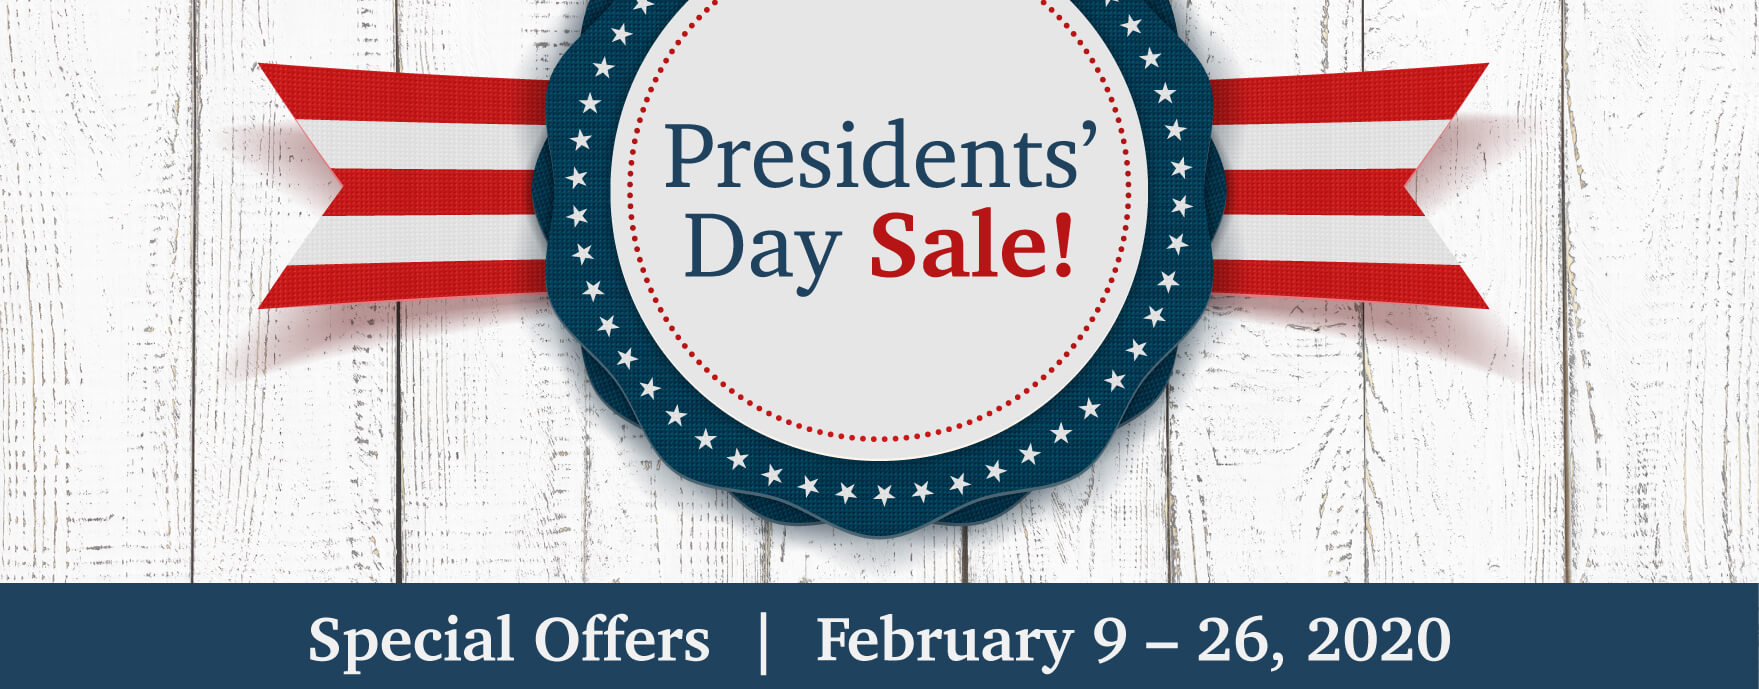 LG Presidents Day Event